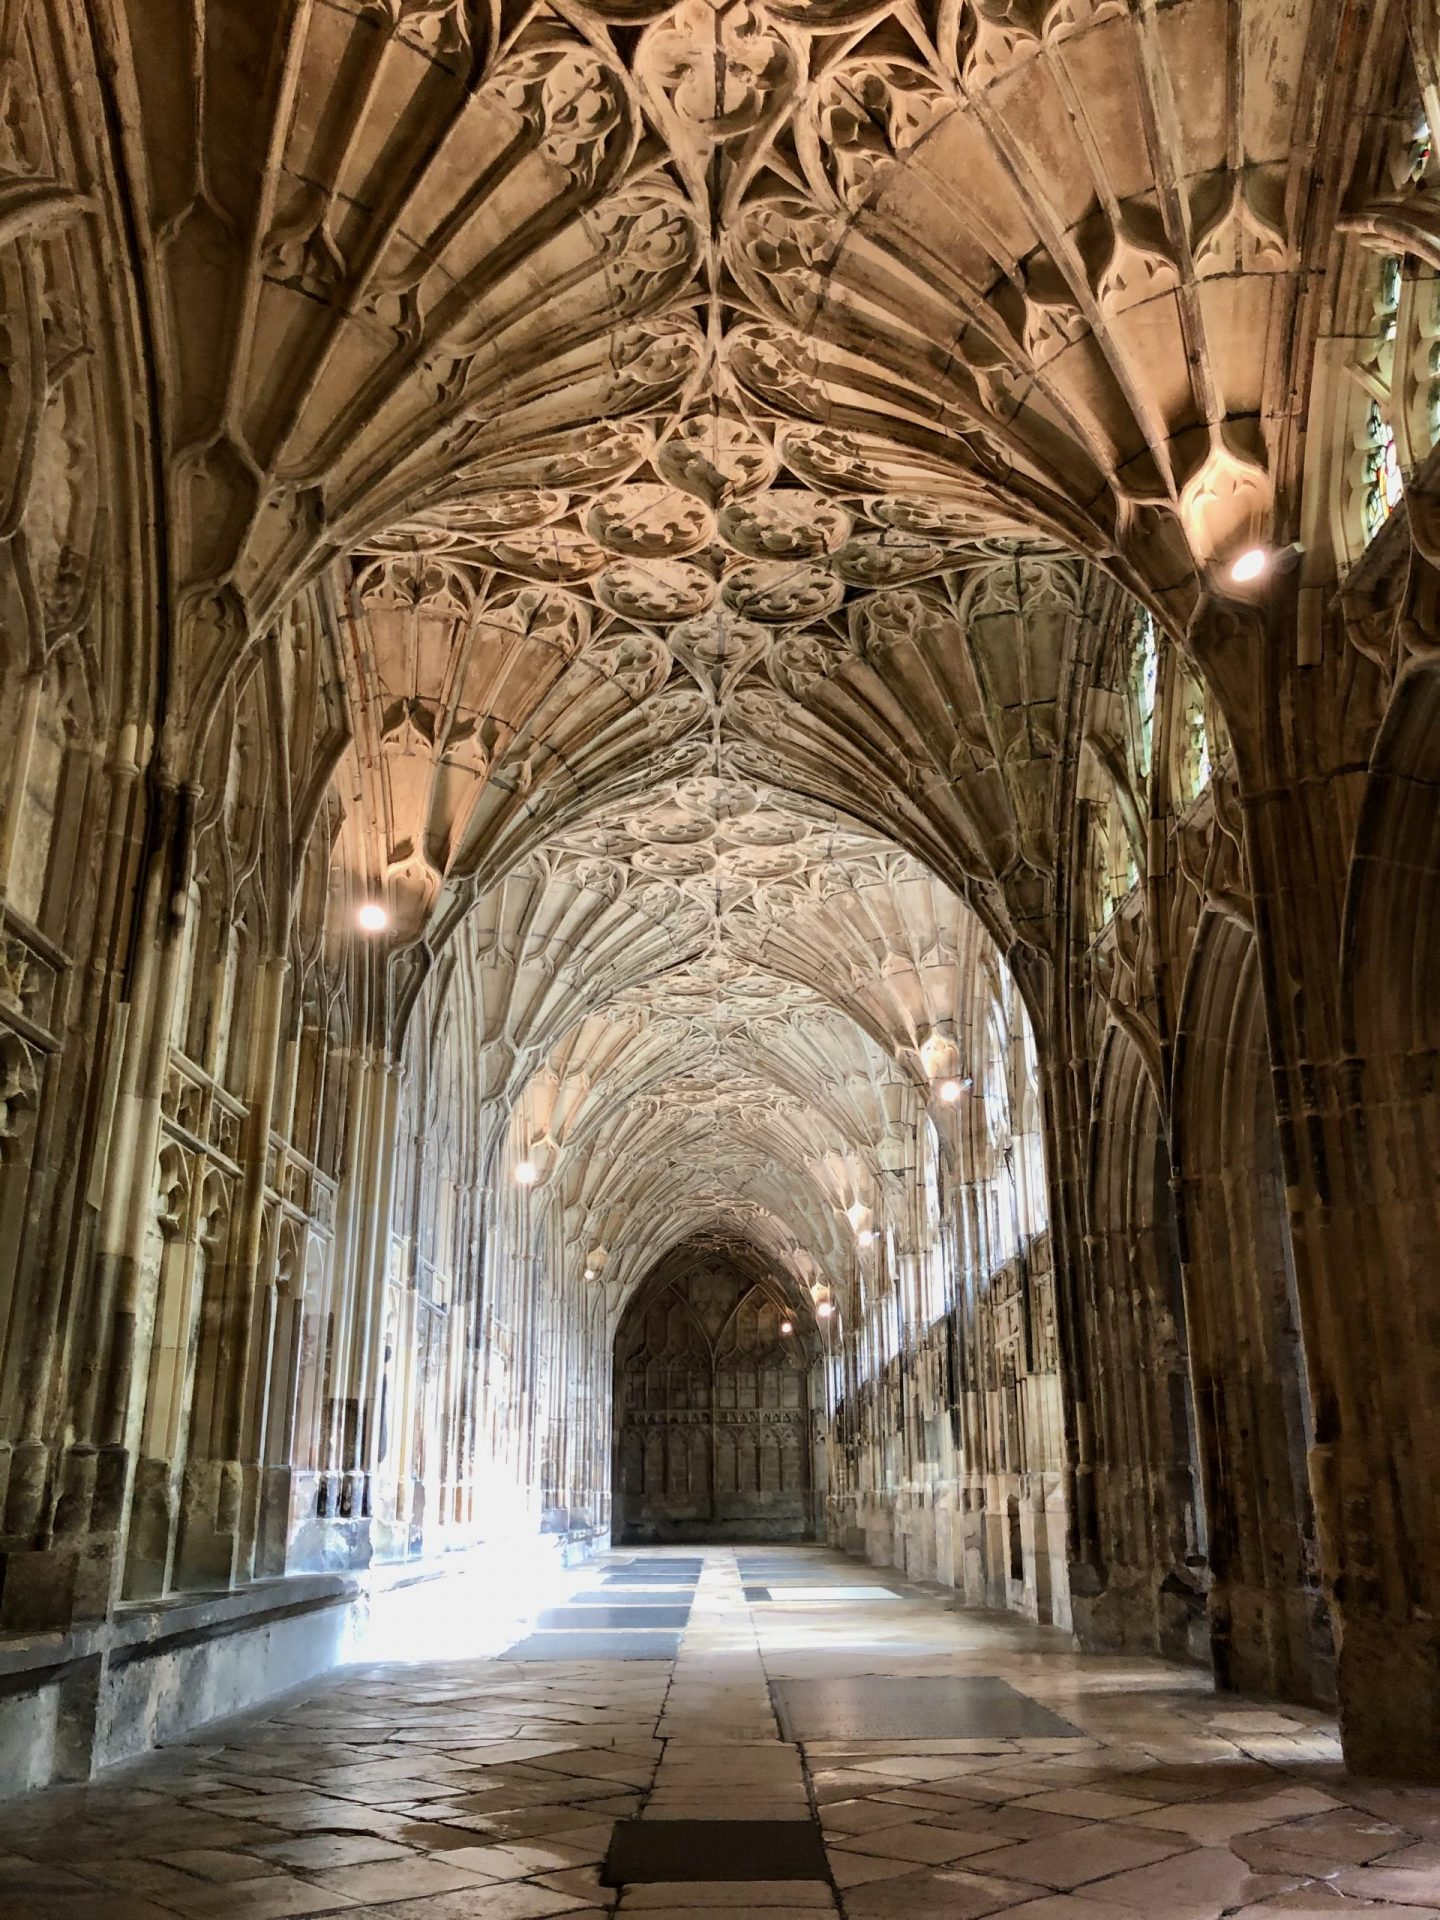 Gloucester cathedral cloisters - one of the earliest appearances of fan vaulting. (copyright Rachel Arnold)